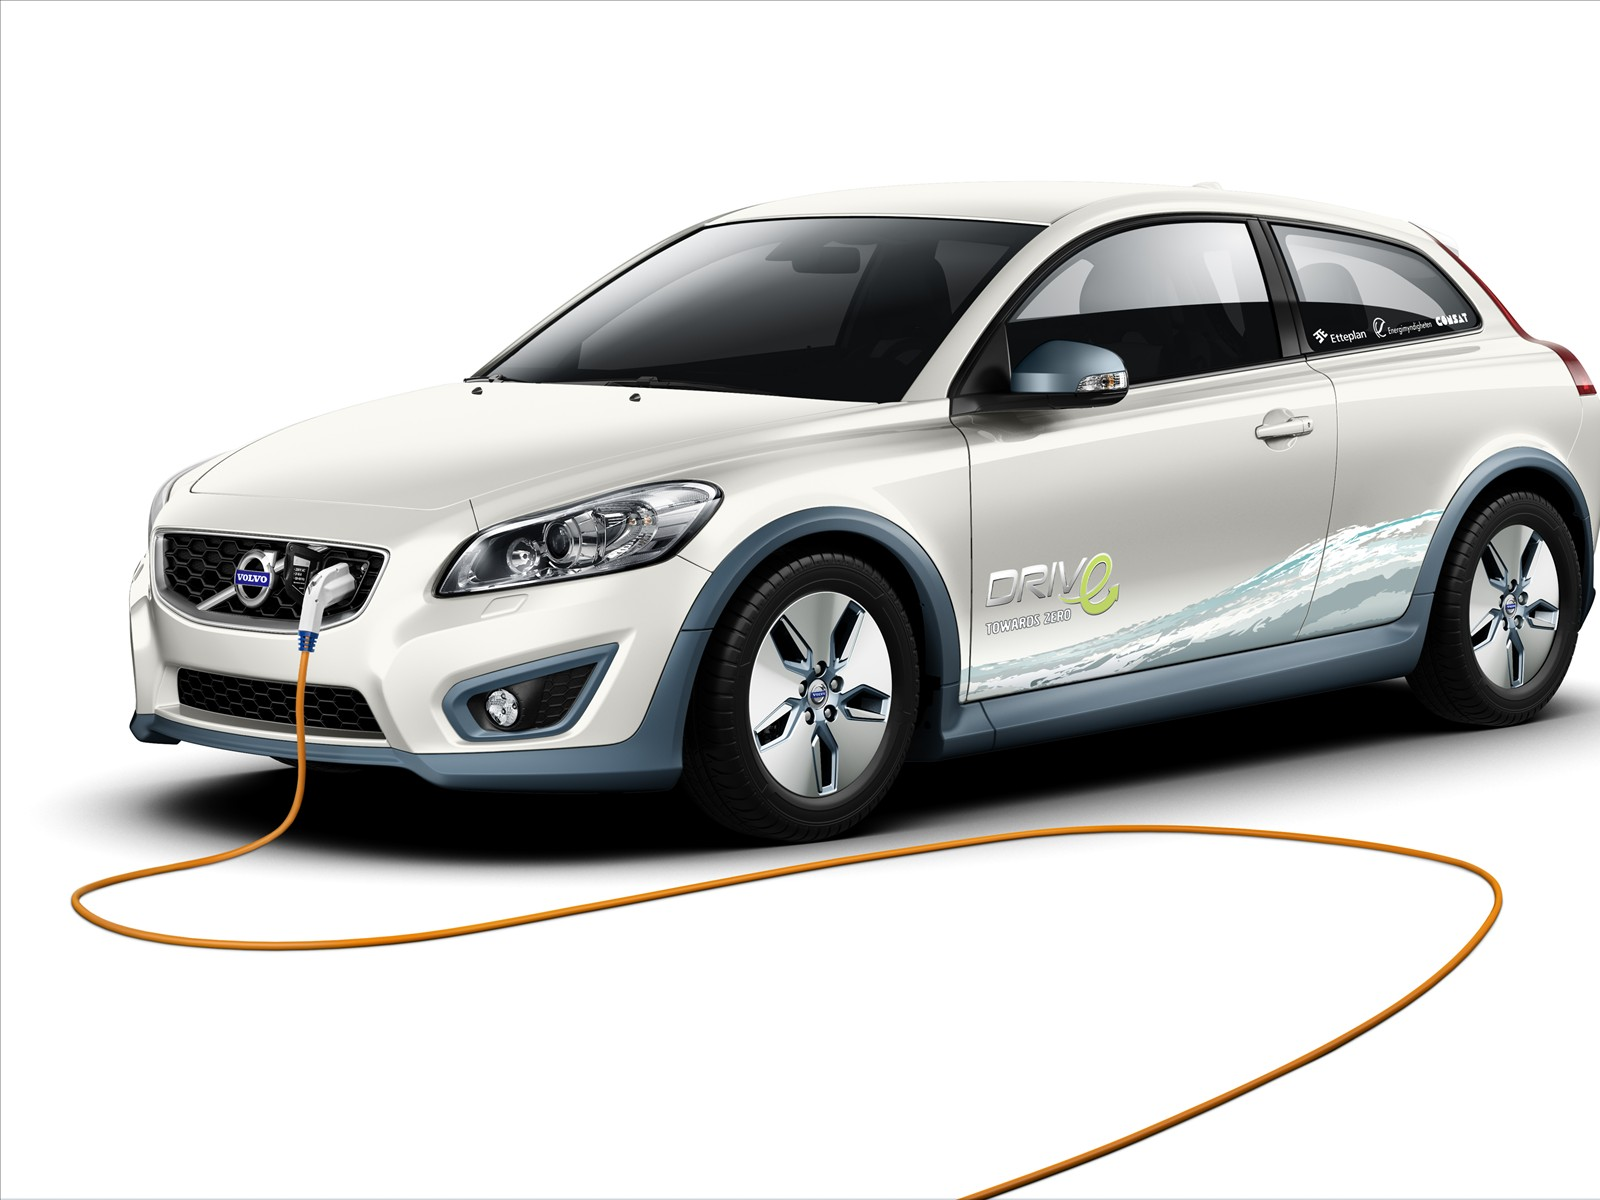 Car Pictures: Volvo C30 Electric Car 2011